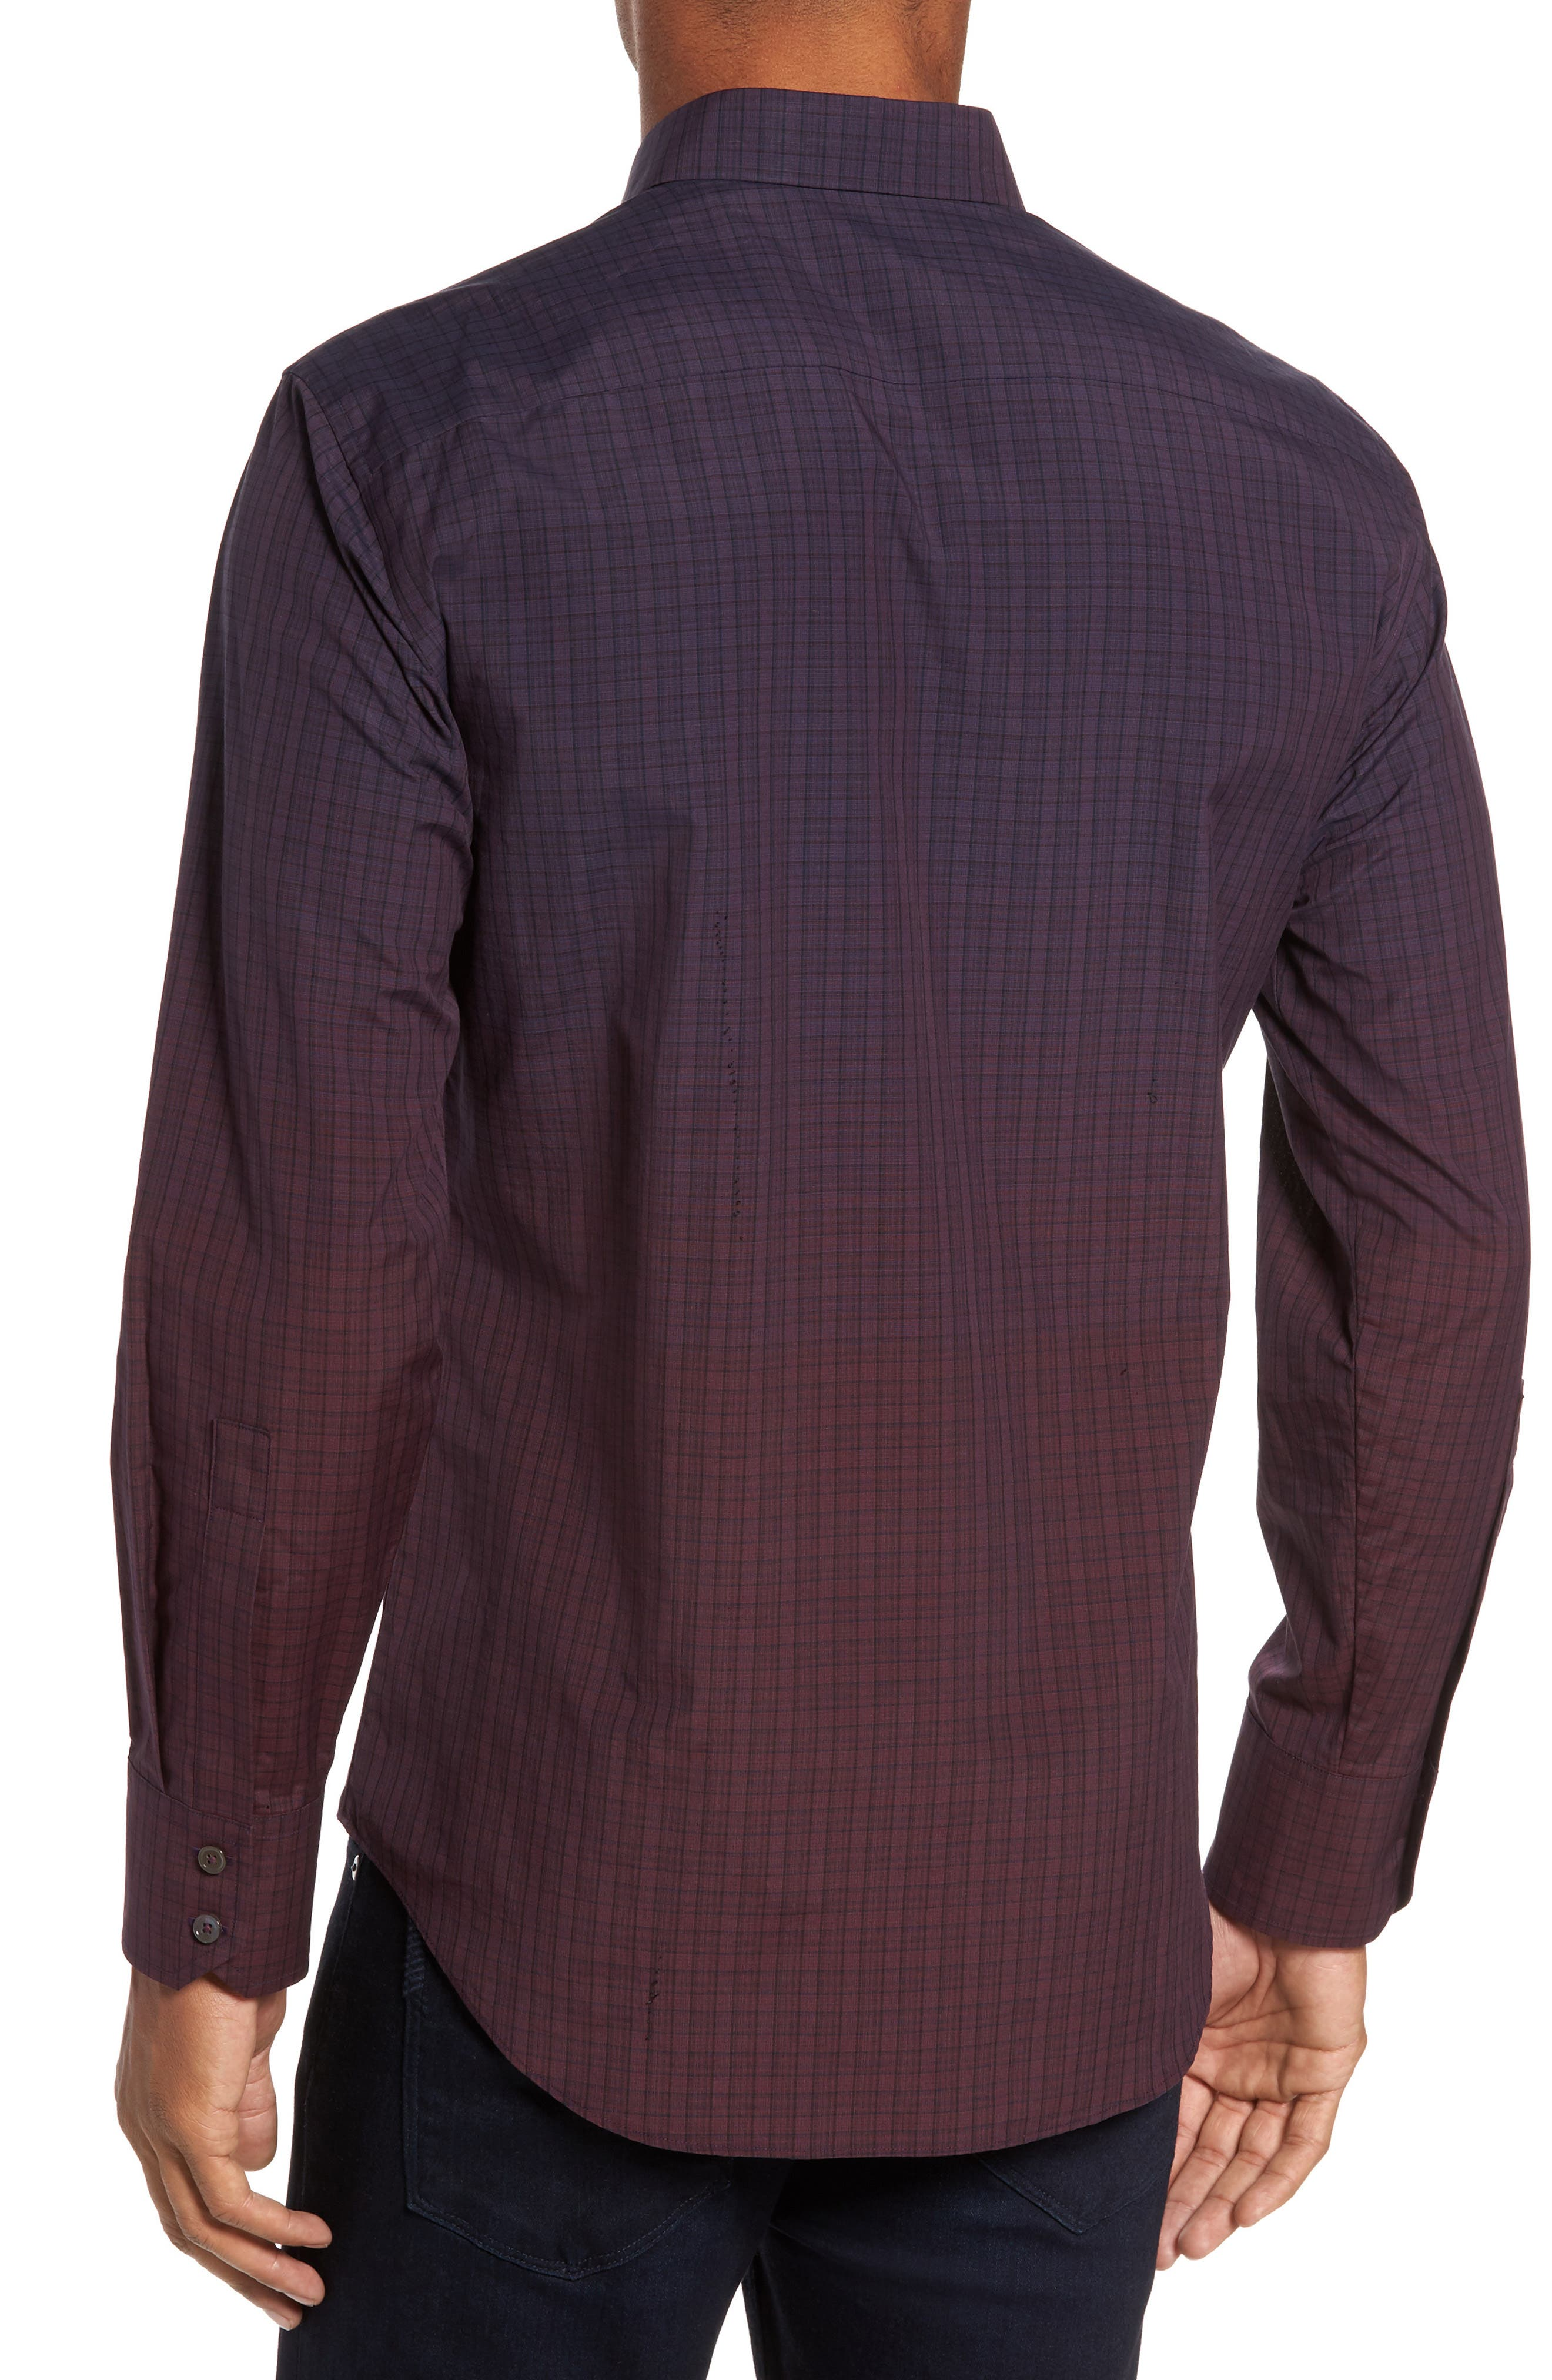 Wein Slim Fit Check Sport Shirt,                             Alternate thumbnail 2, color,                             Wine